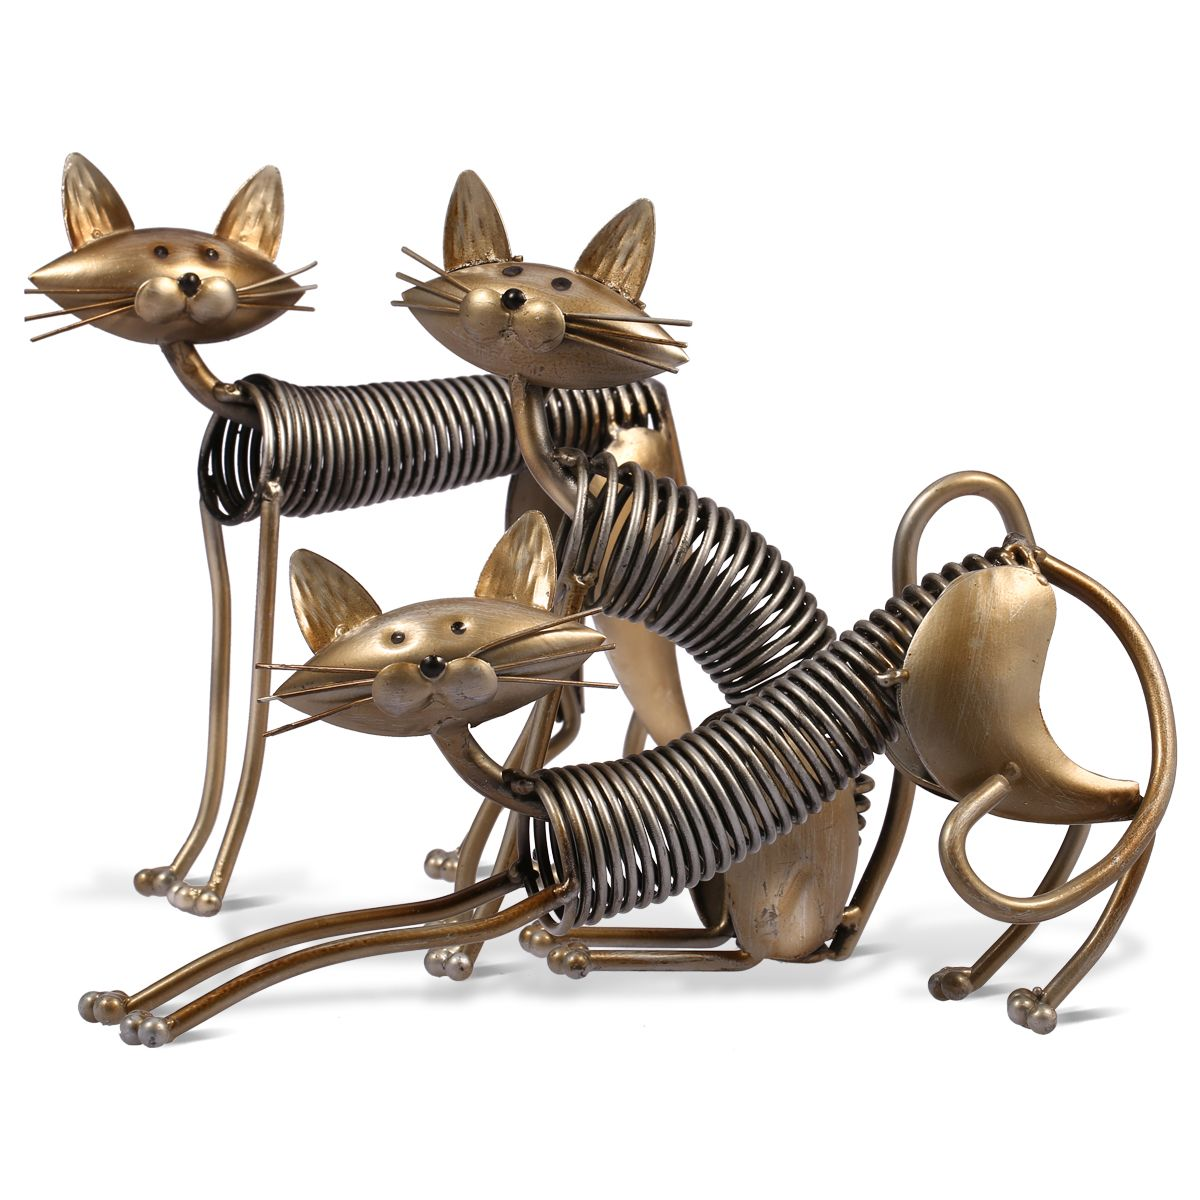 Metal Sculpture Iron Art Cat Spring Cat Handicraft Crafting Furnishing Ornaments Fairy Garden Home Decoration Accessories(China (Mainland))